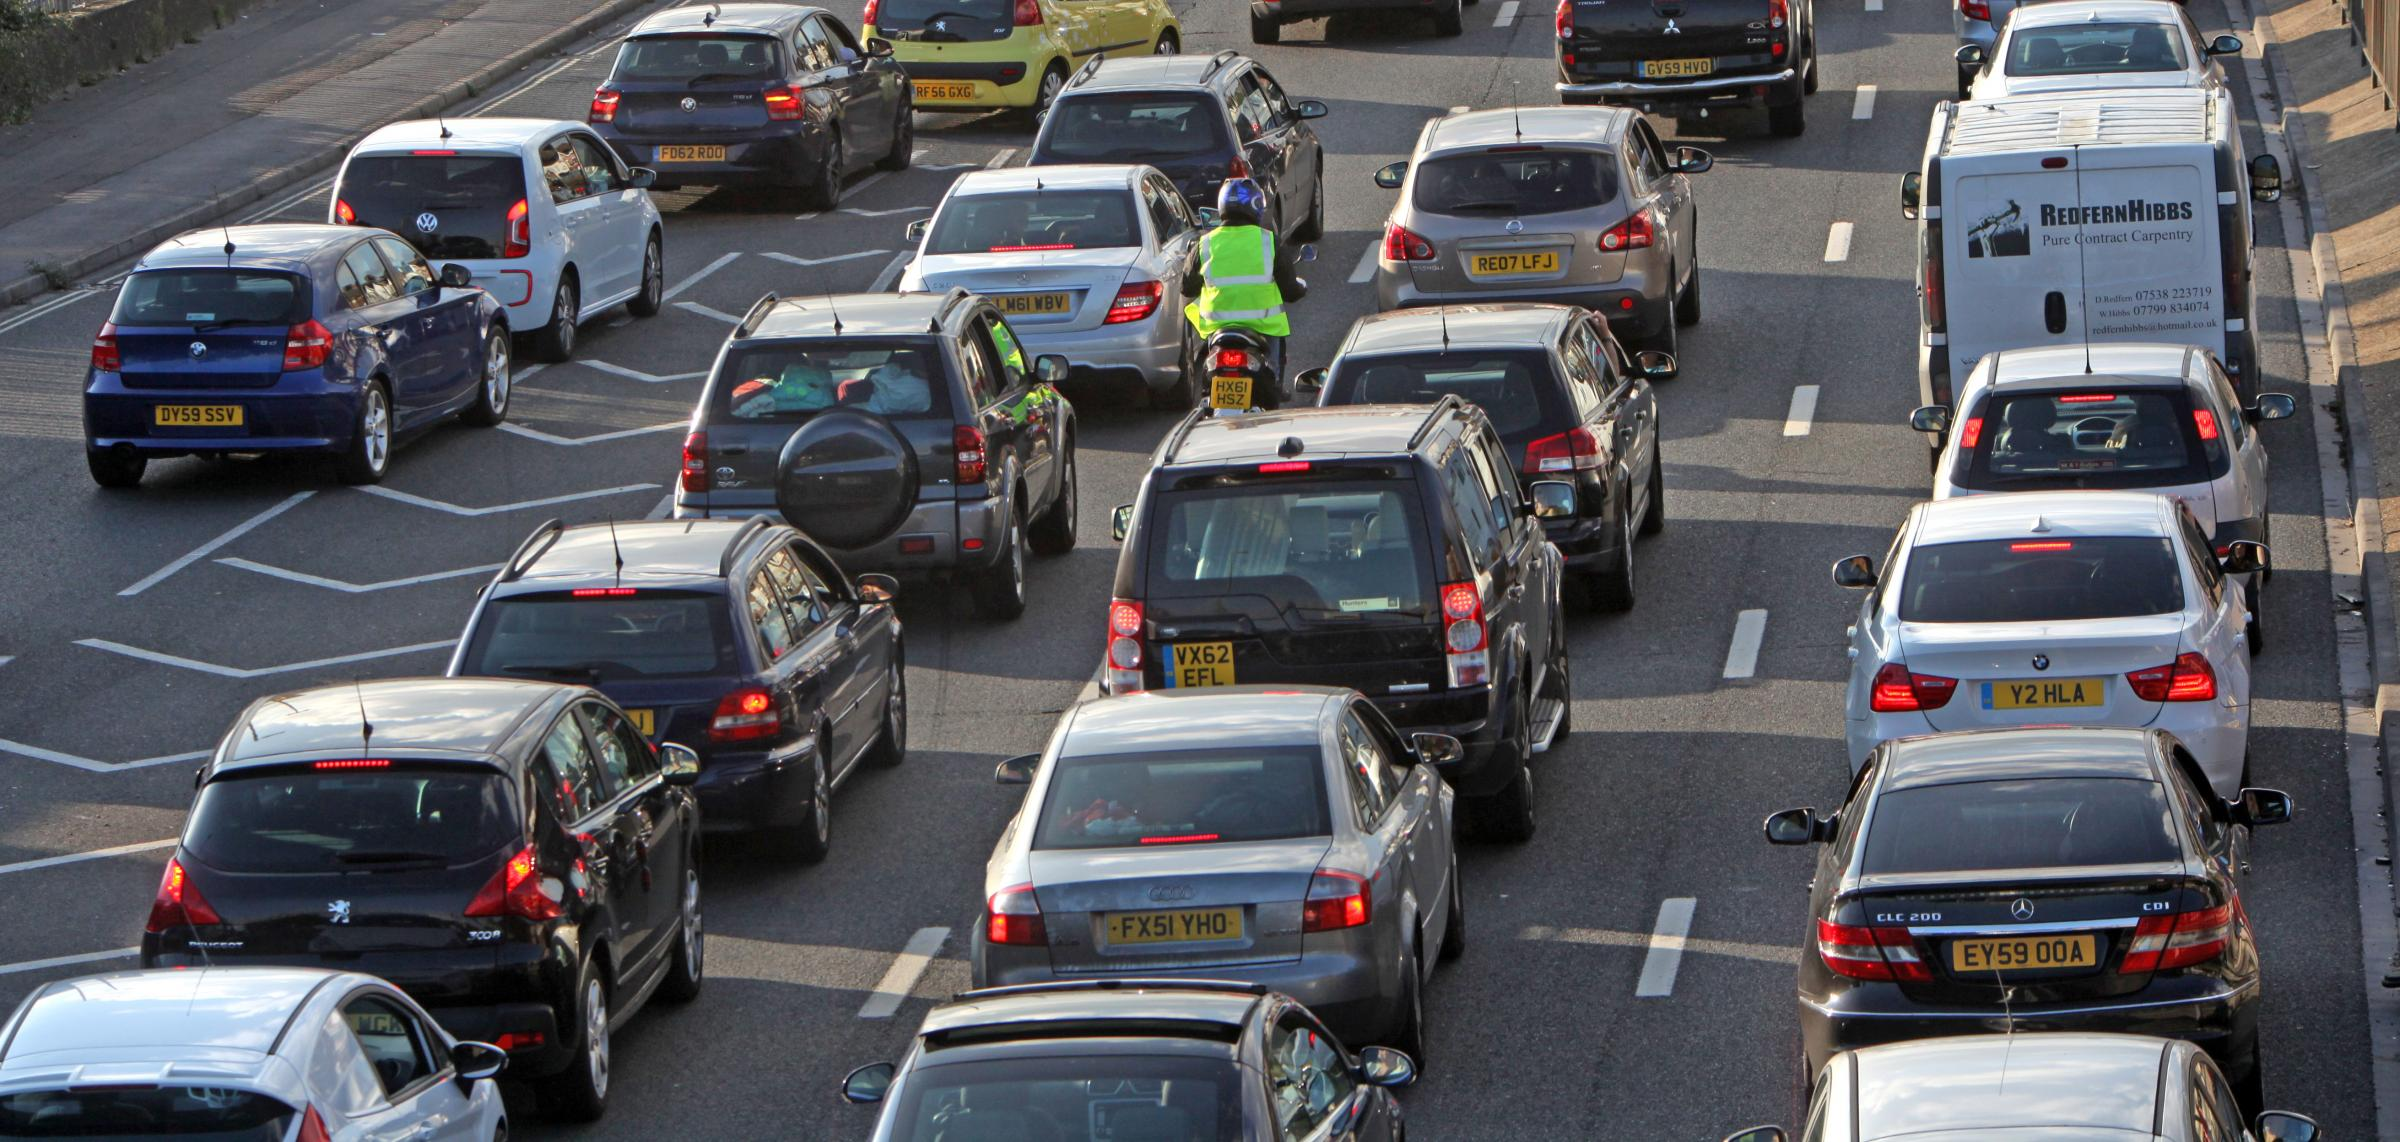 Two of Warrington's most congested areas set for multi-million pound road improvements